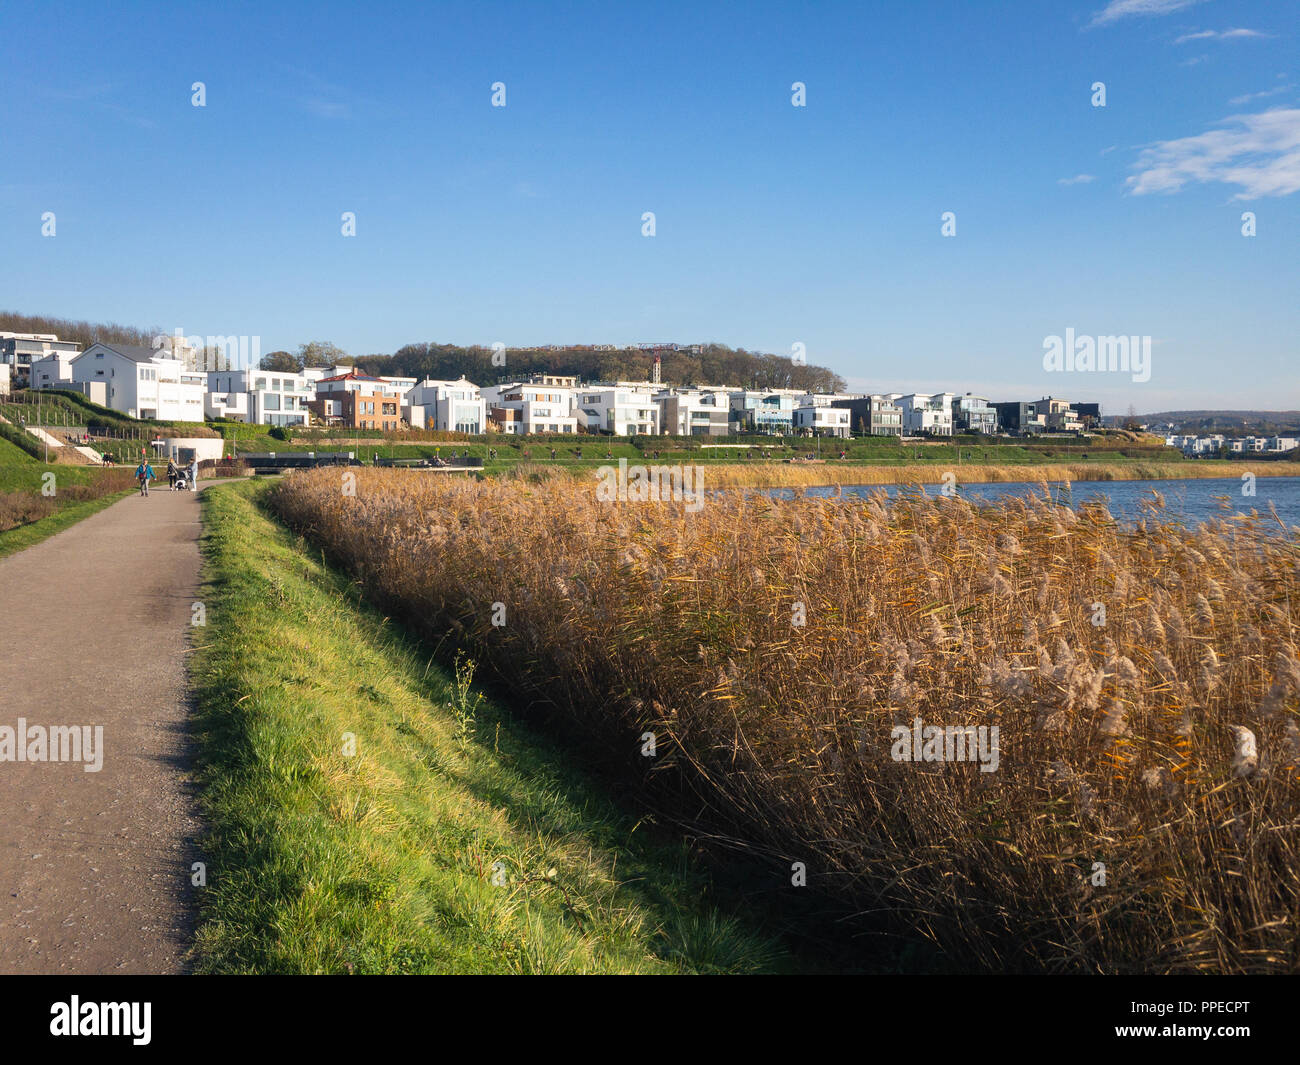 Residential houses at Phoenixsee in the German city of Dortmund on a sunny afternoon in autumn - Stock Image